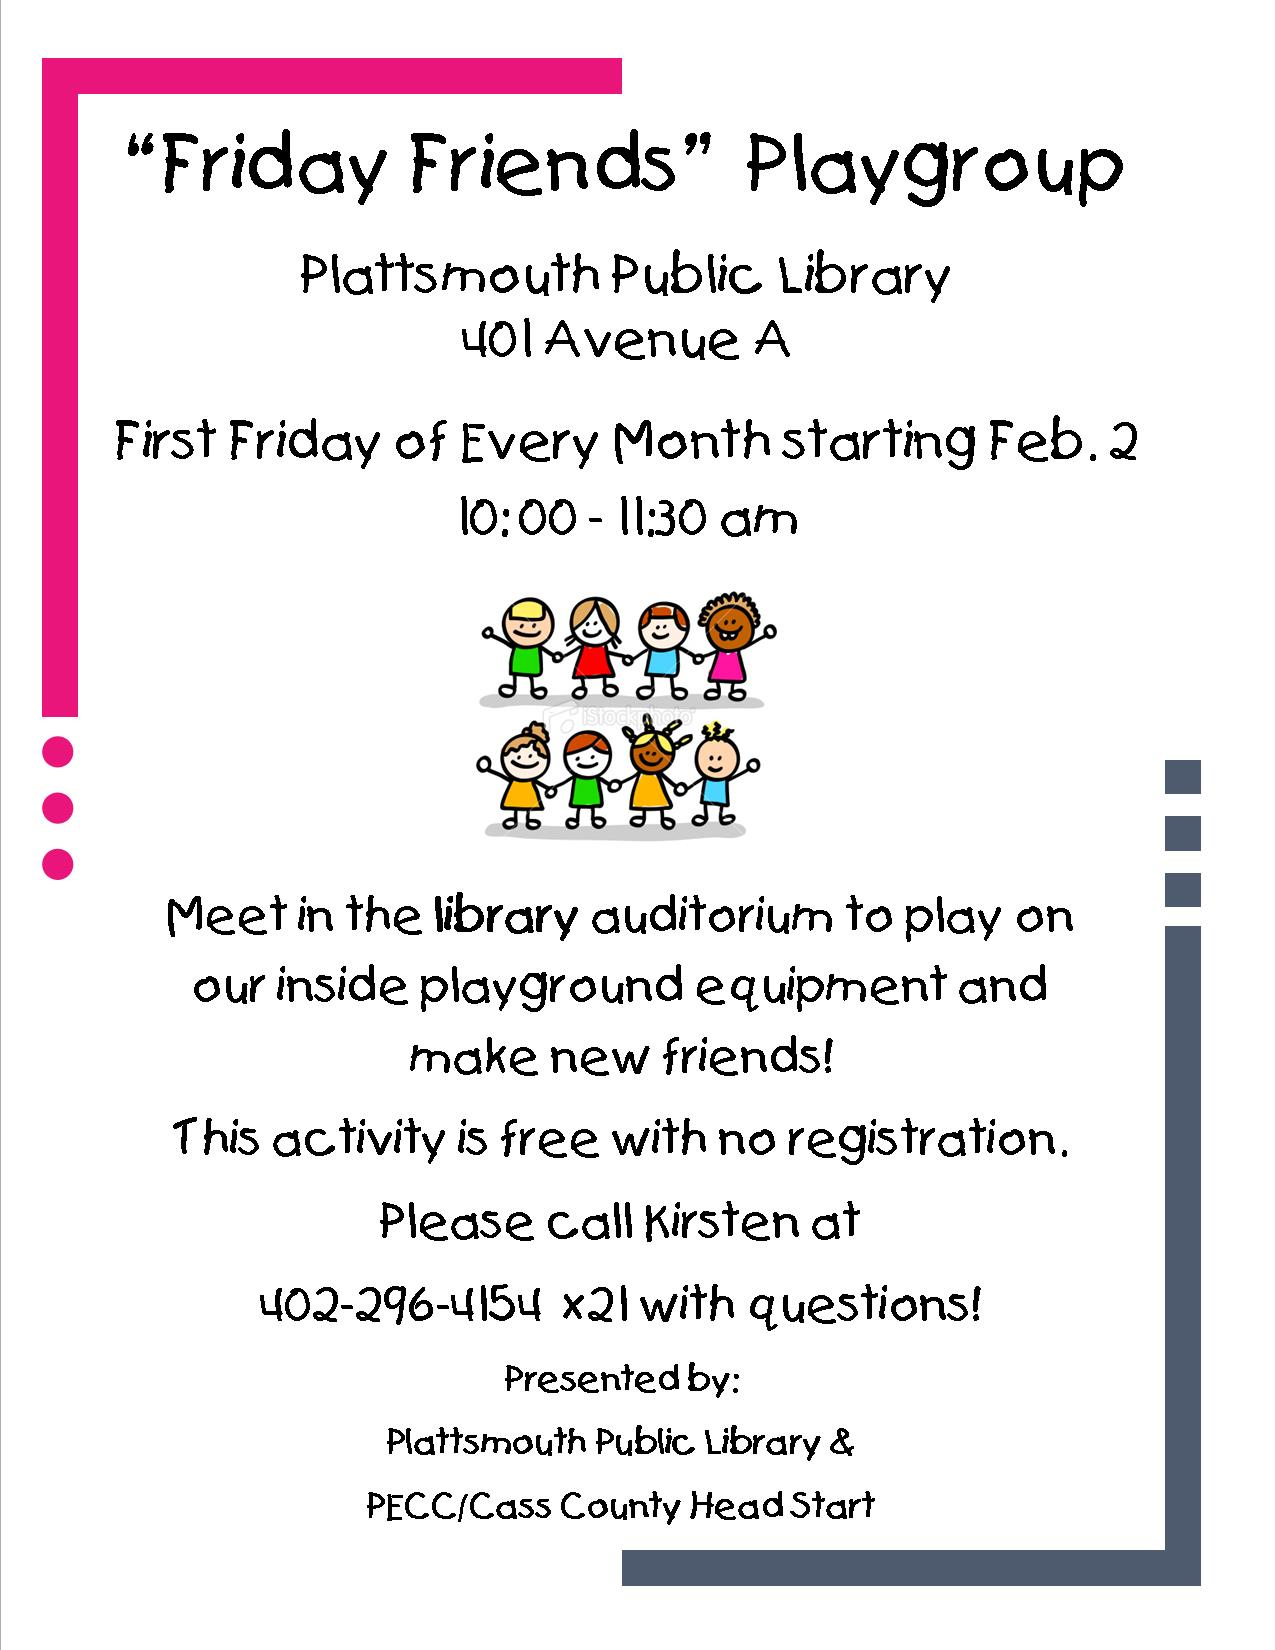 Friday Friends Playgroup Poster